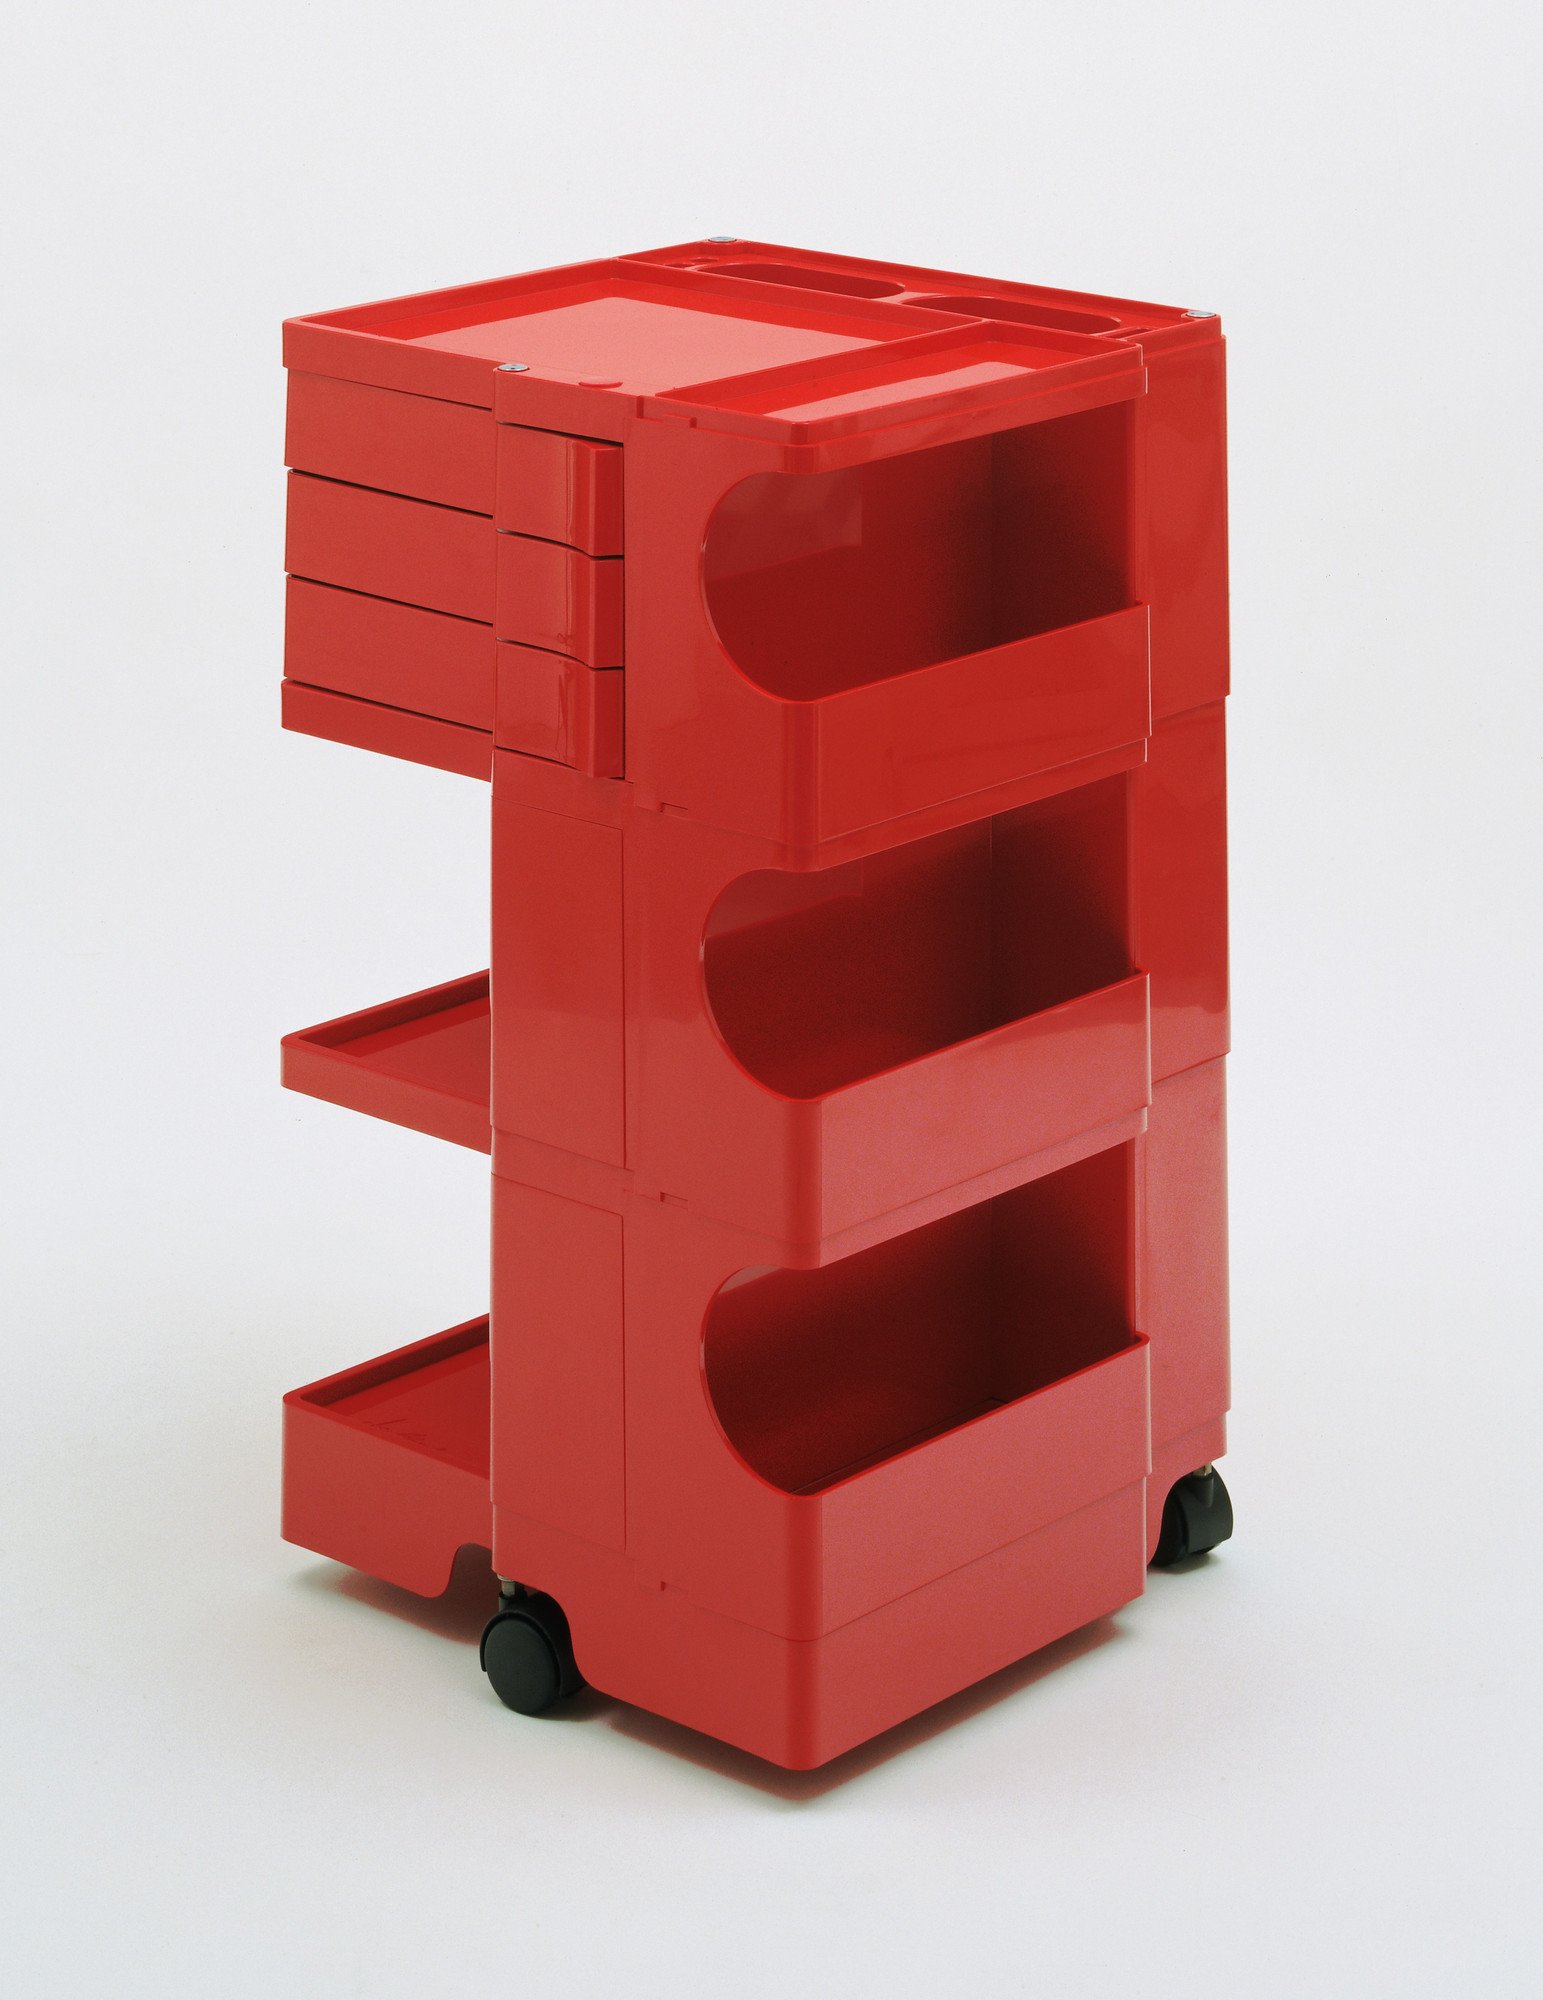 Joe Colombo. Boby 3 Portable Storage System. 1969